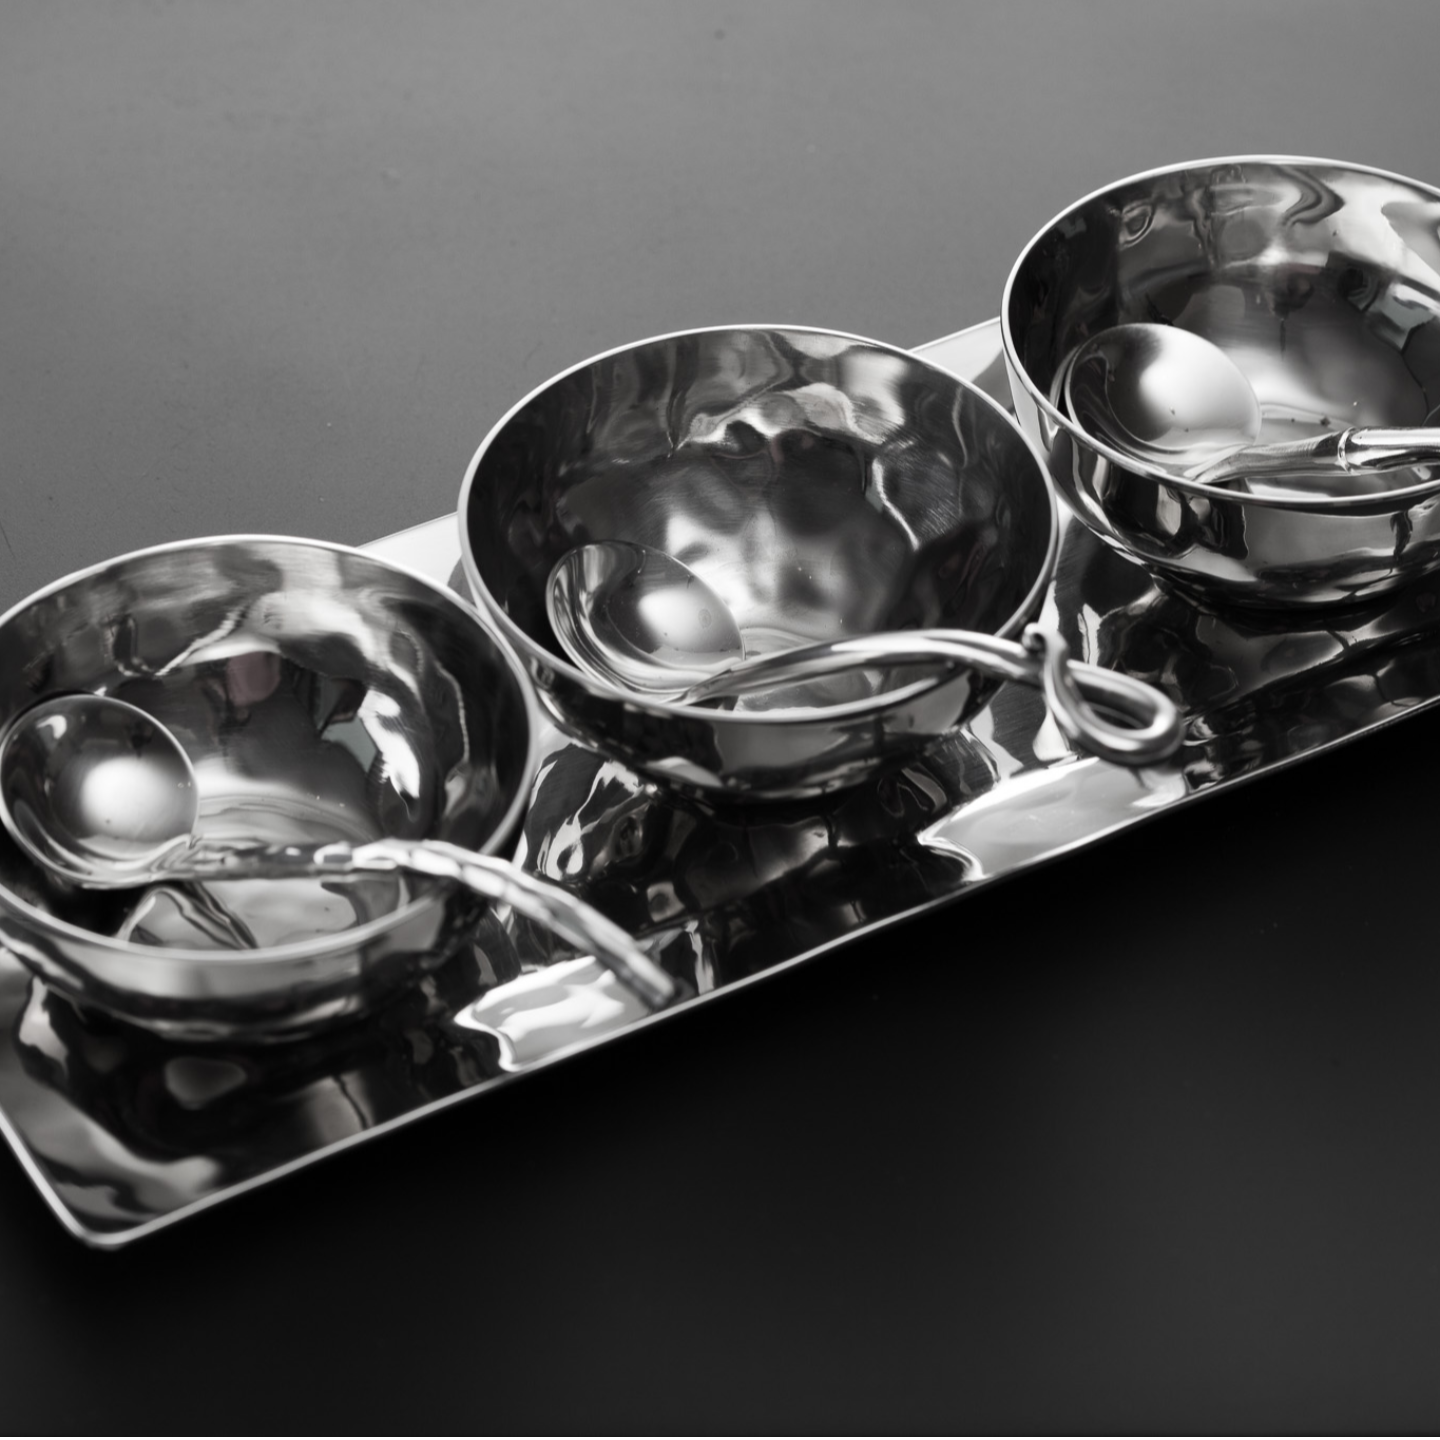 Condiment Set with 3 bowls and spoons